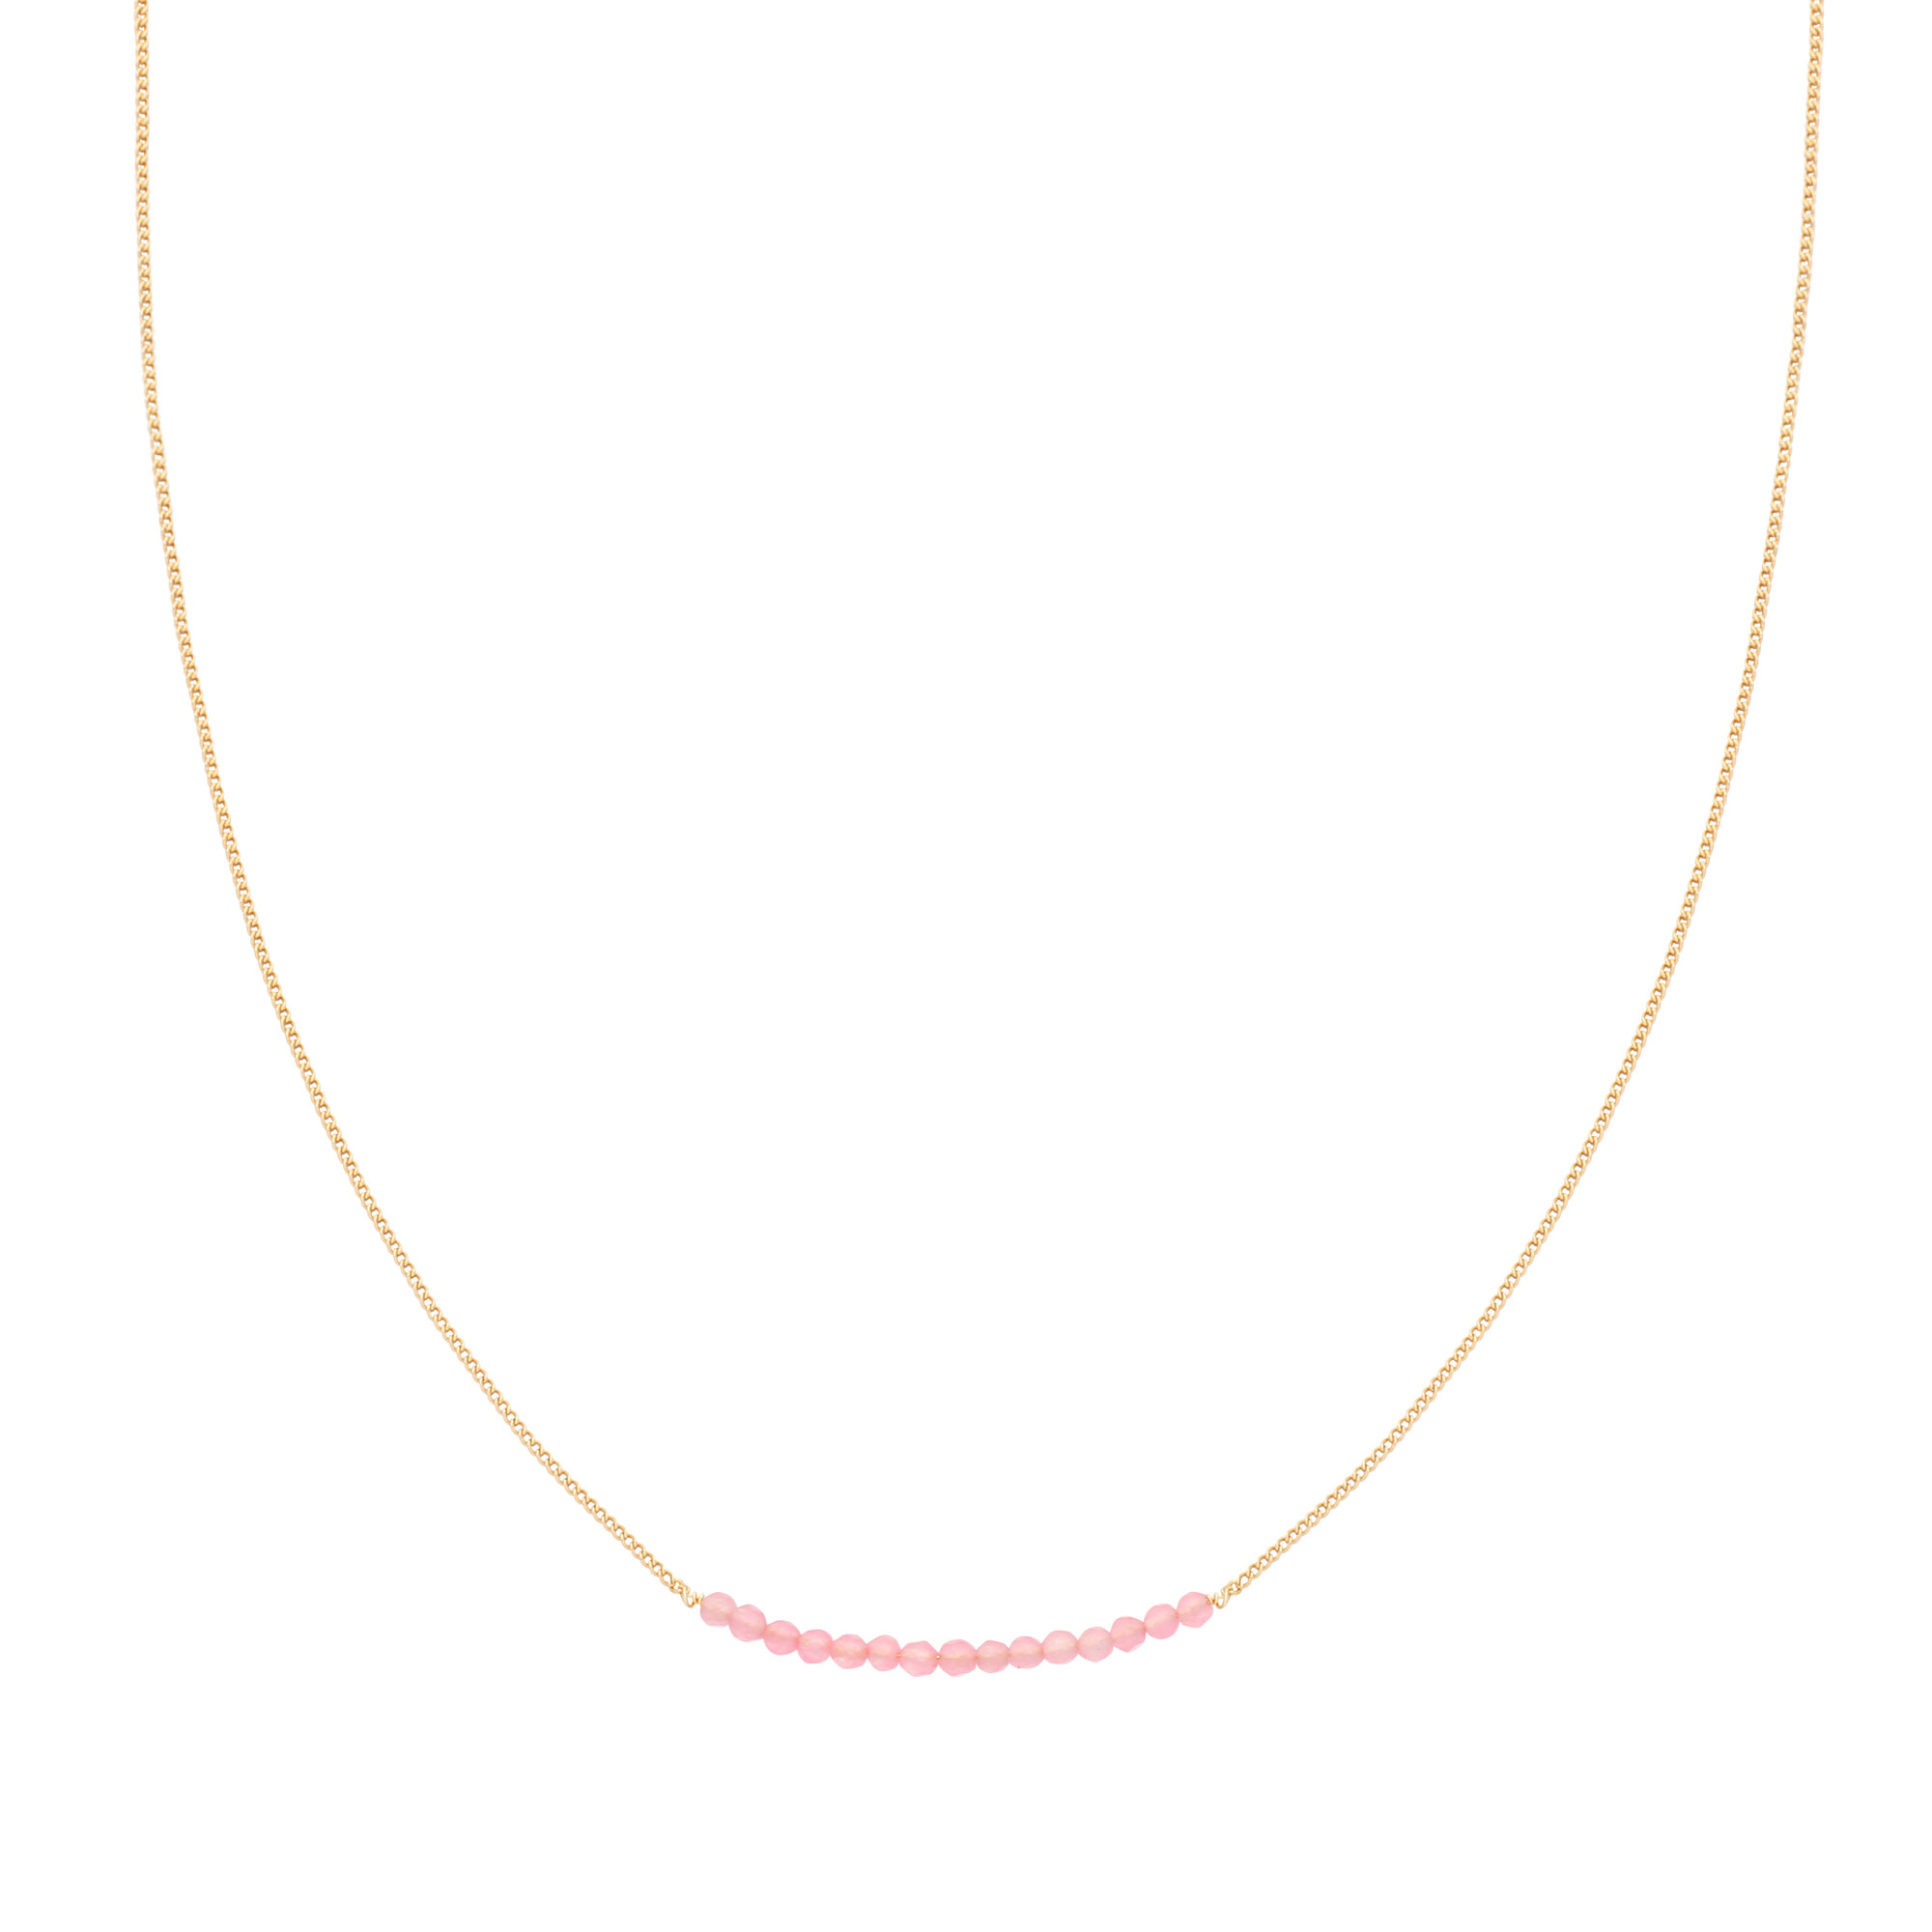 With love Necklace happy beads - pink